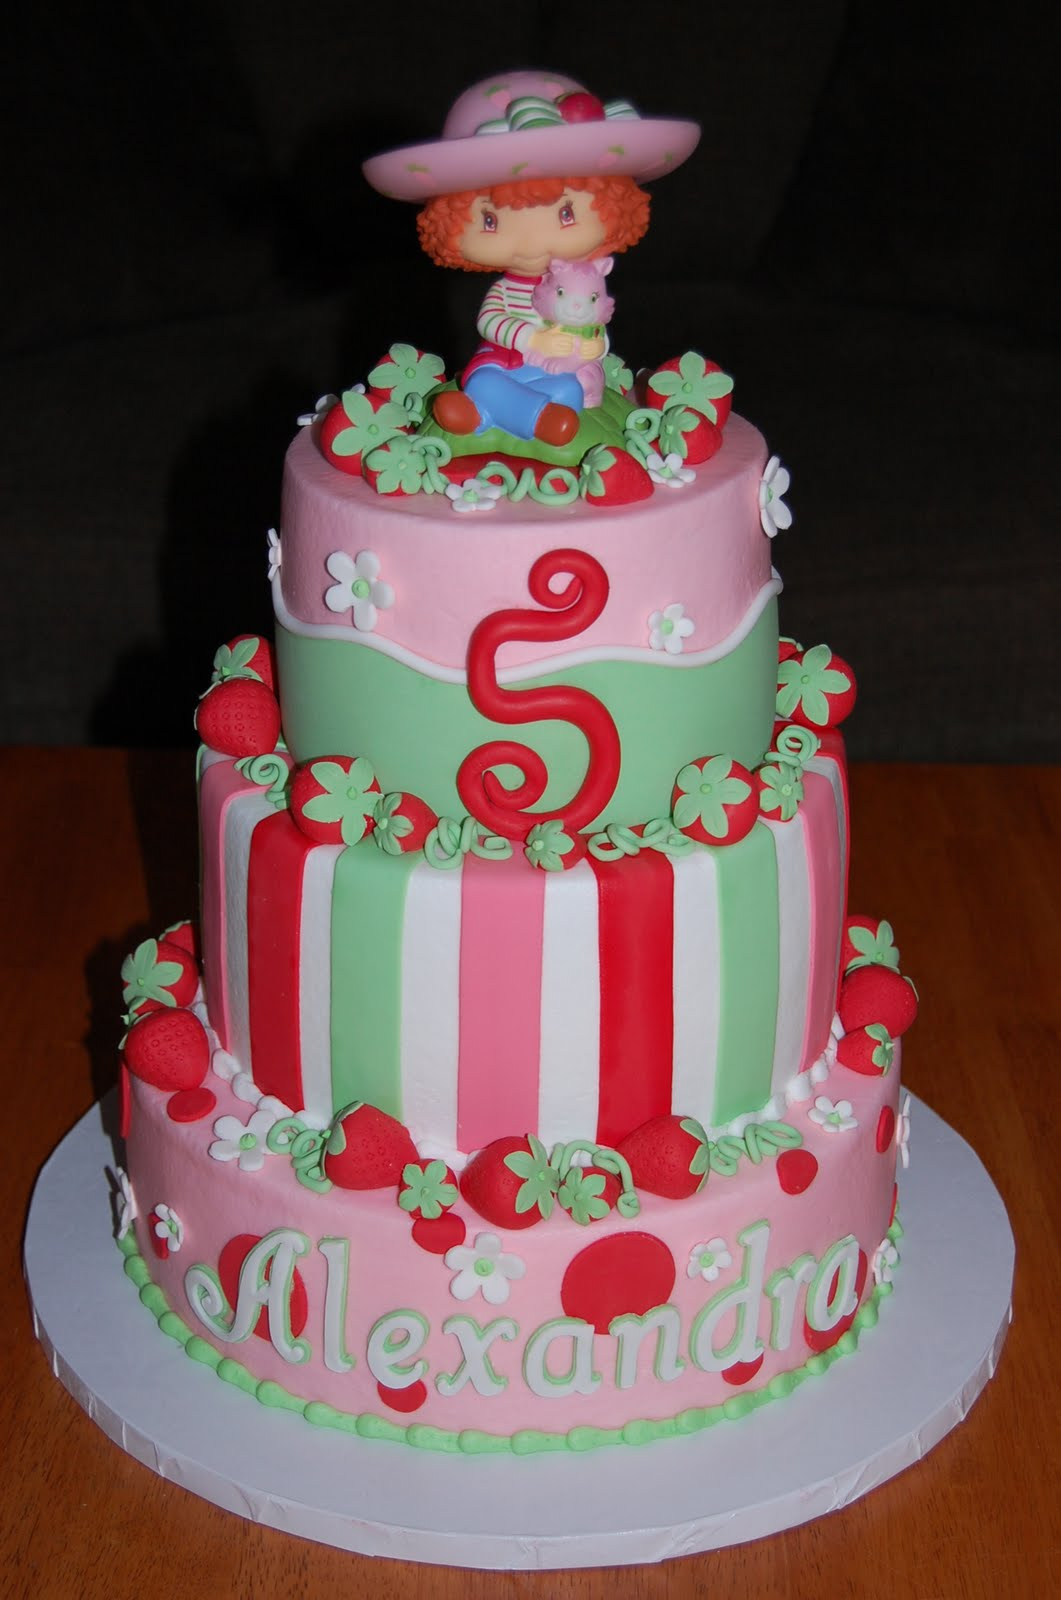 Strawberry Shortcake Cake Images & Pictures - Becuo